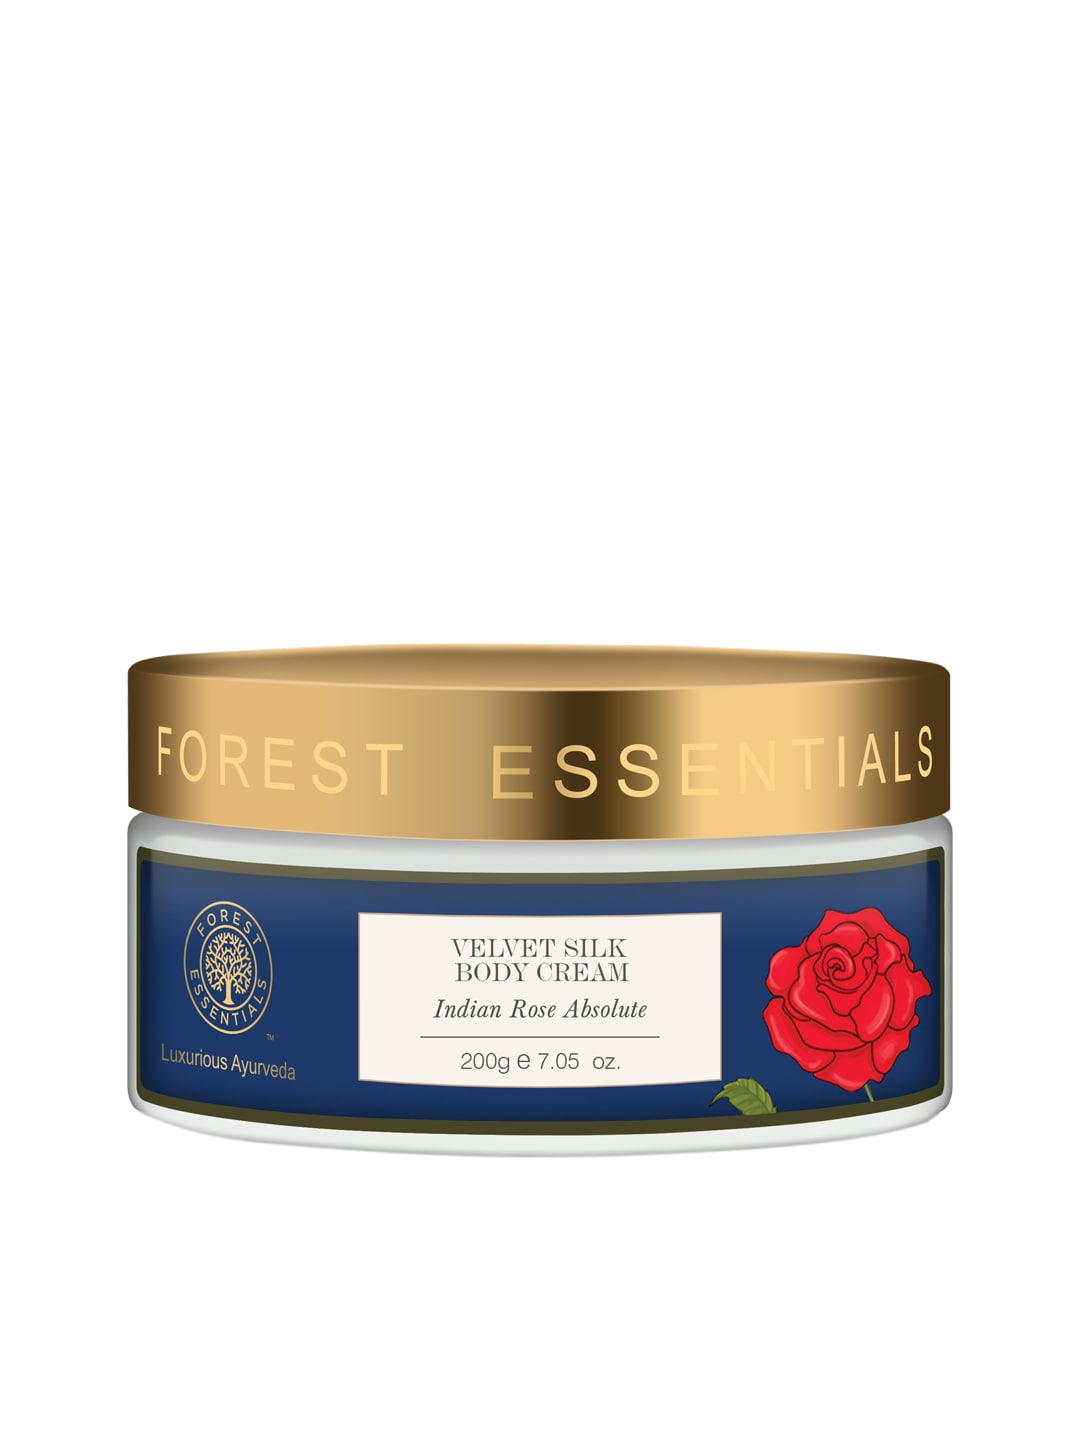 Forest Essentials Velvet Silk Indian Rose Absolute Body Cream image